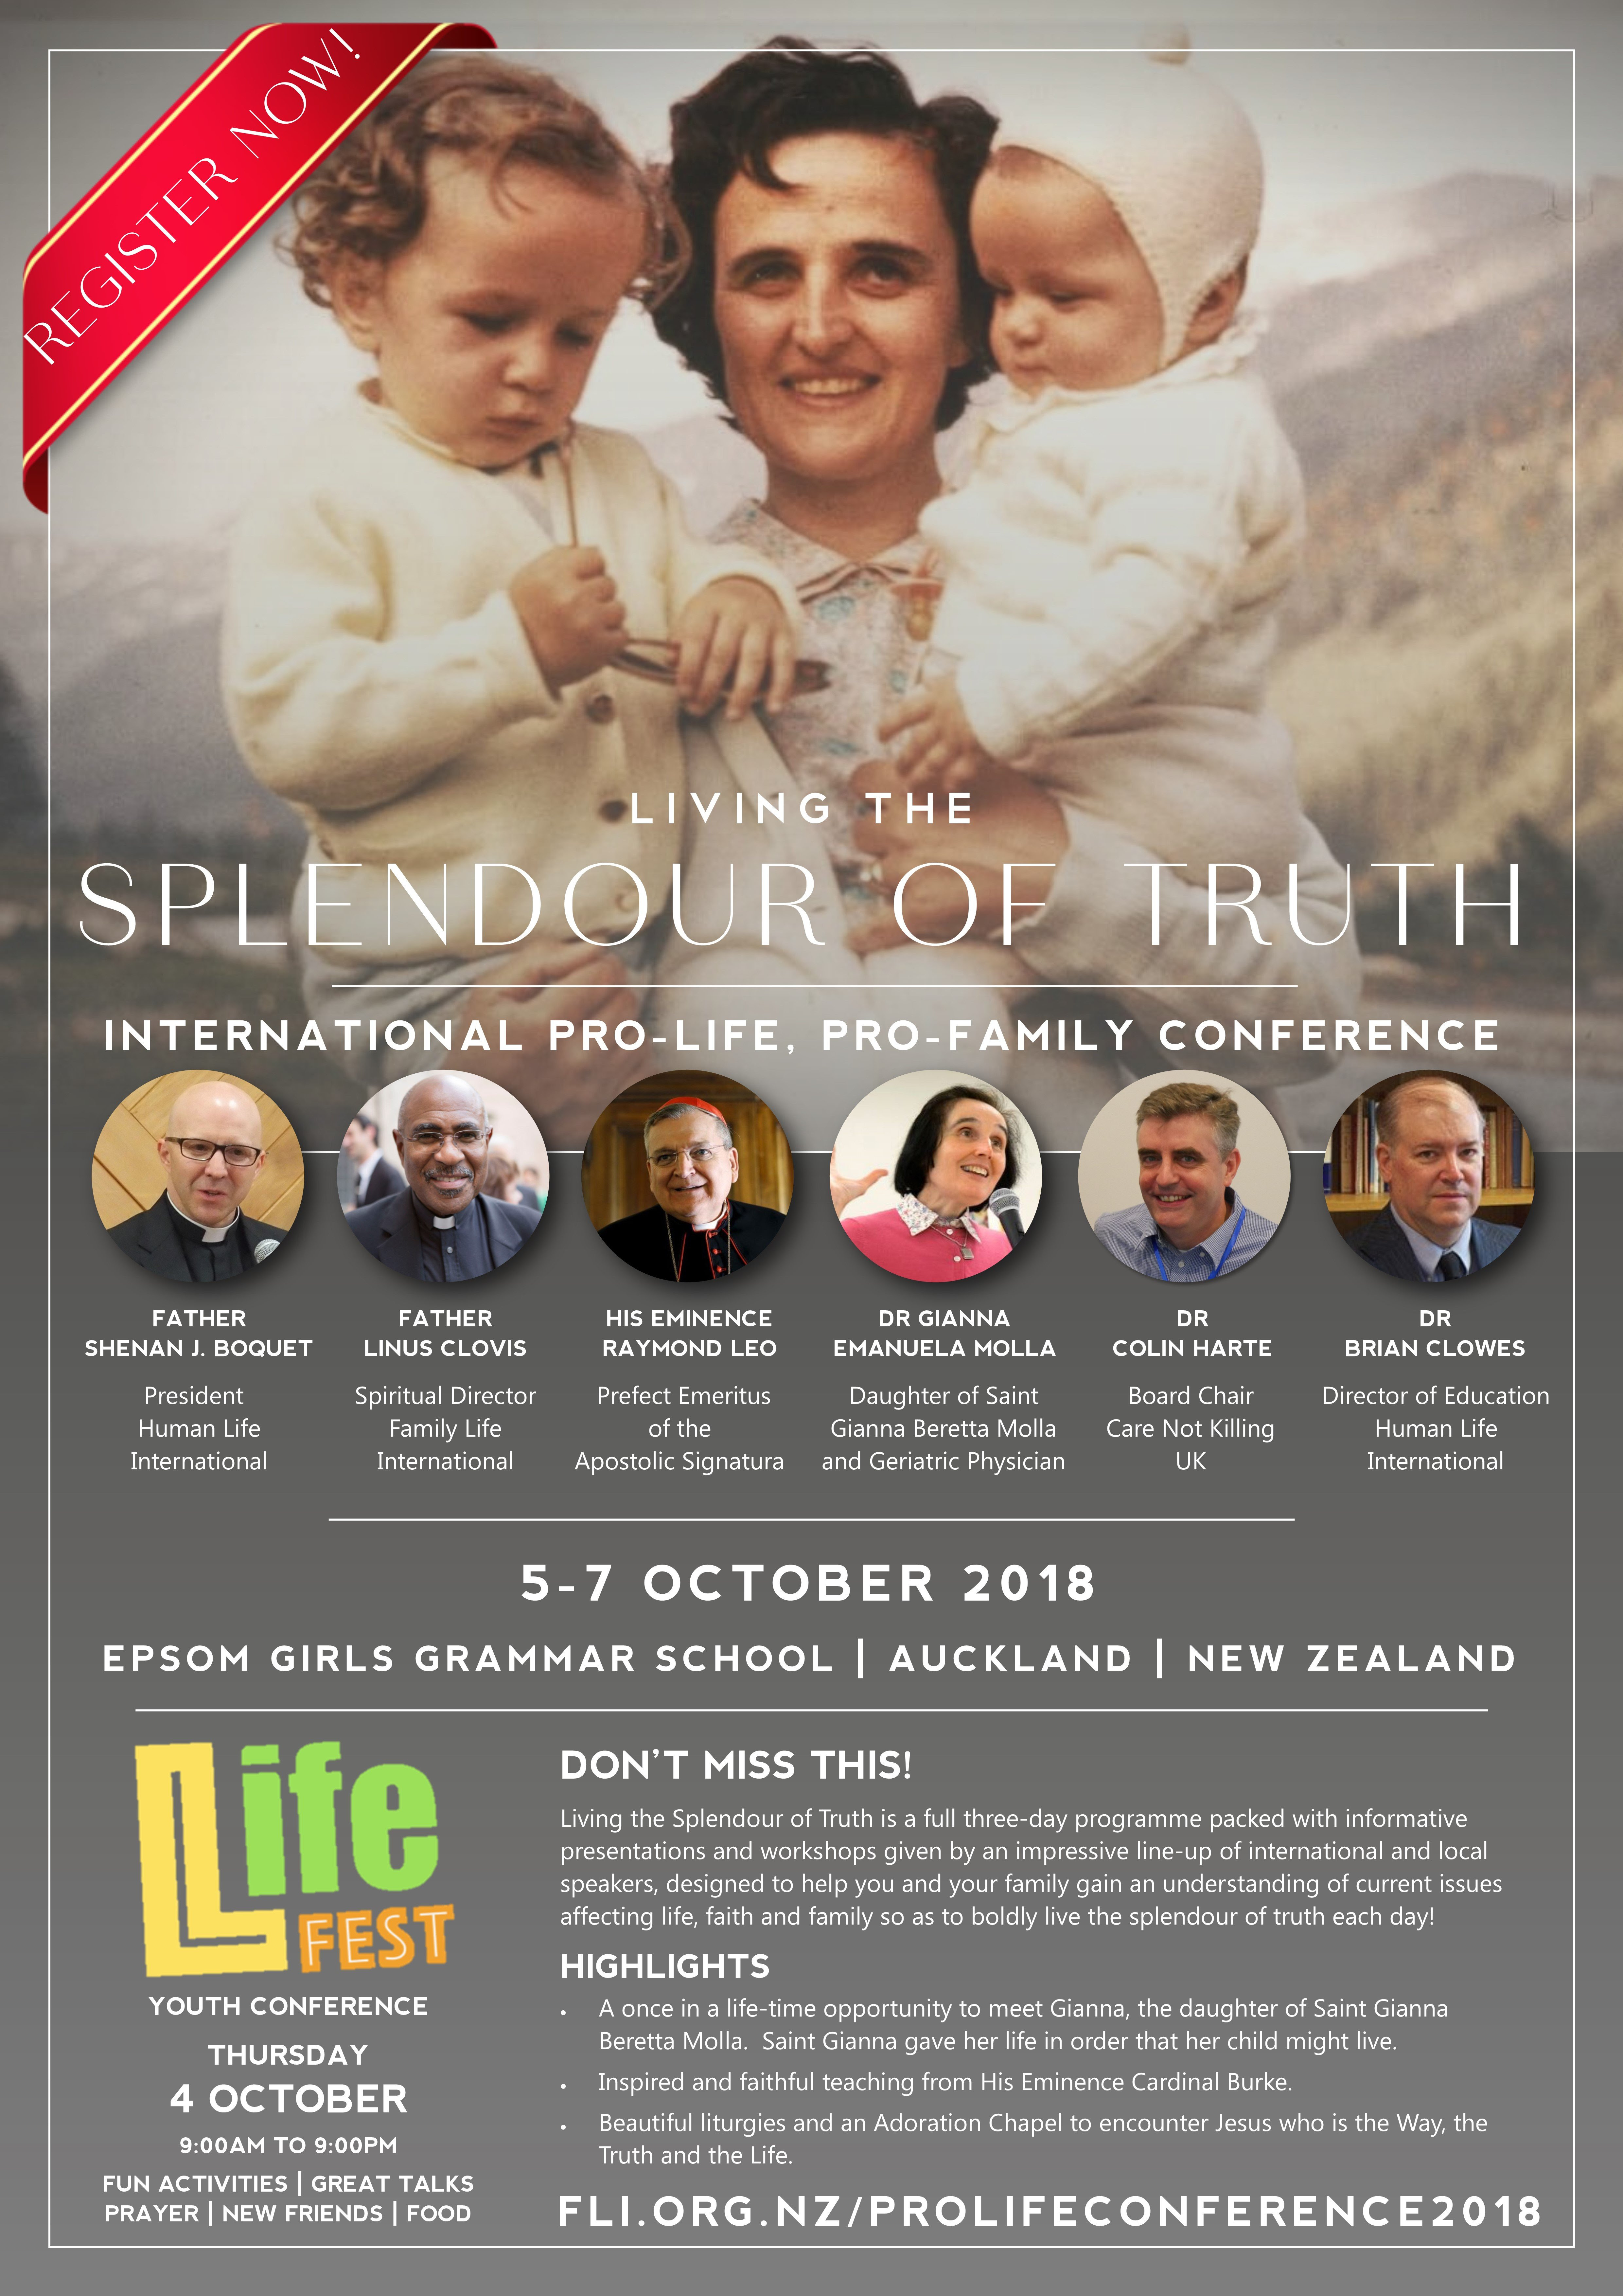 Living the Splendour of Truth Conference